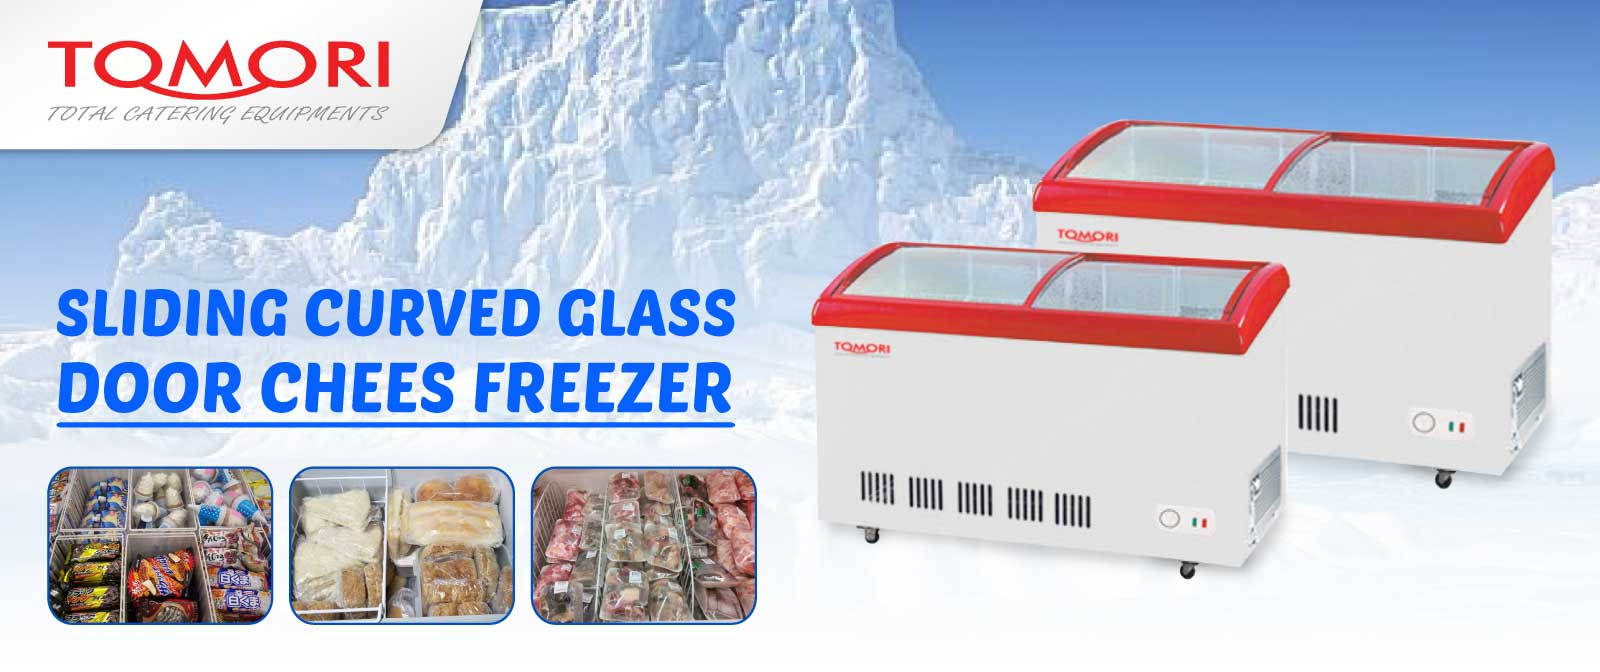 BannerTomori Curved Glass Deep Freezer